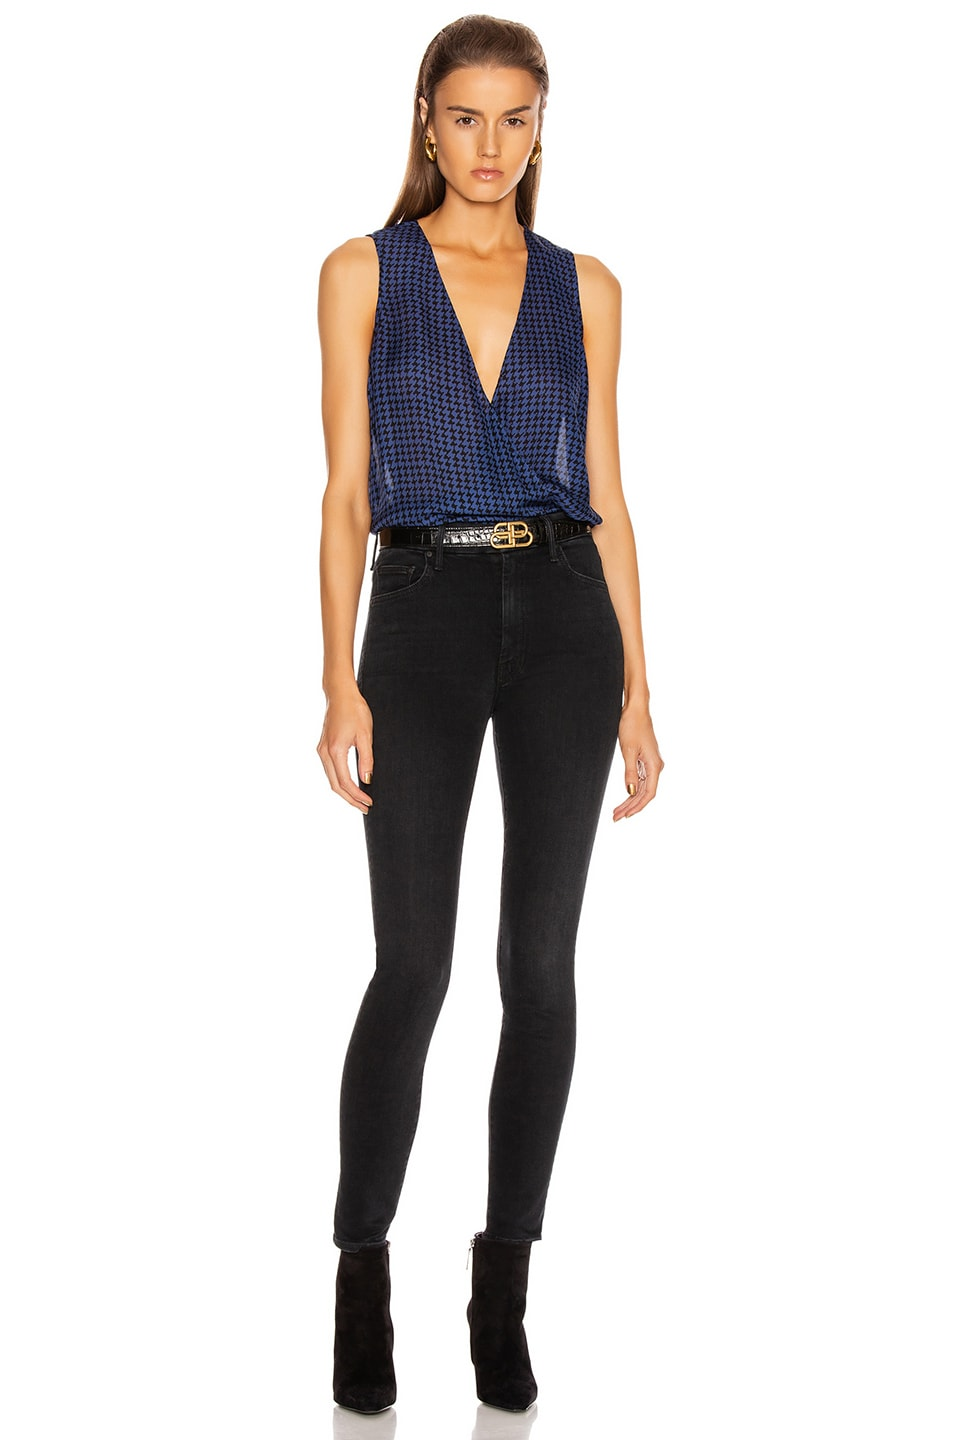 Image 5 of L'AGENCE Mila Draped Sleeveless Top in Black & Oceana Houndstooth